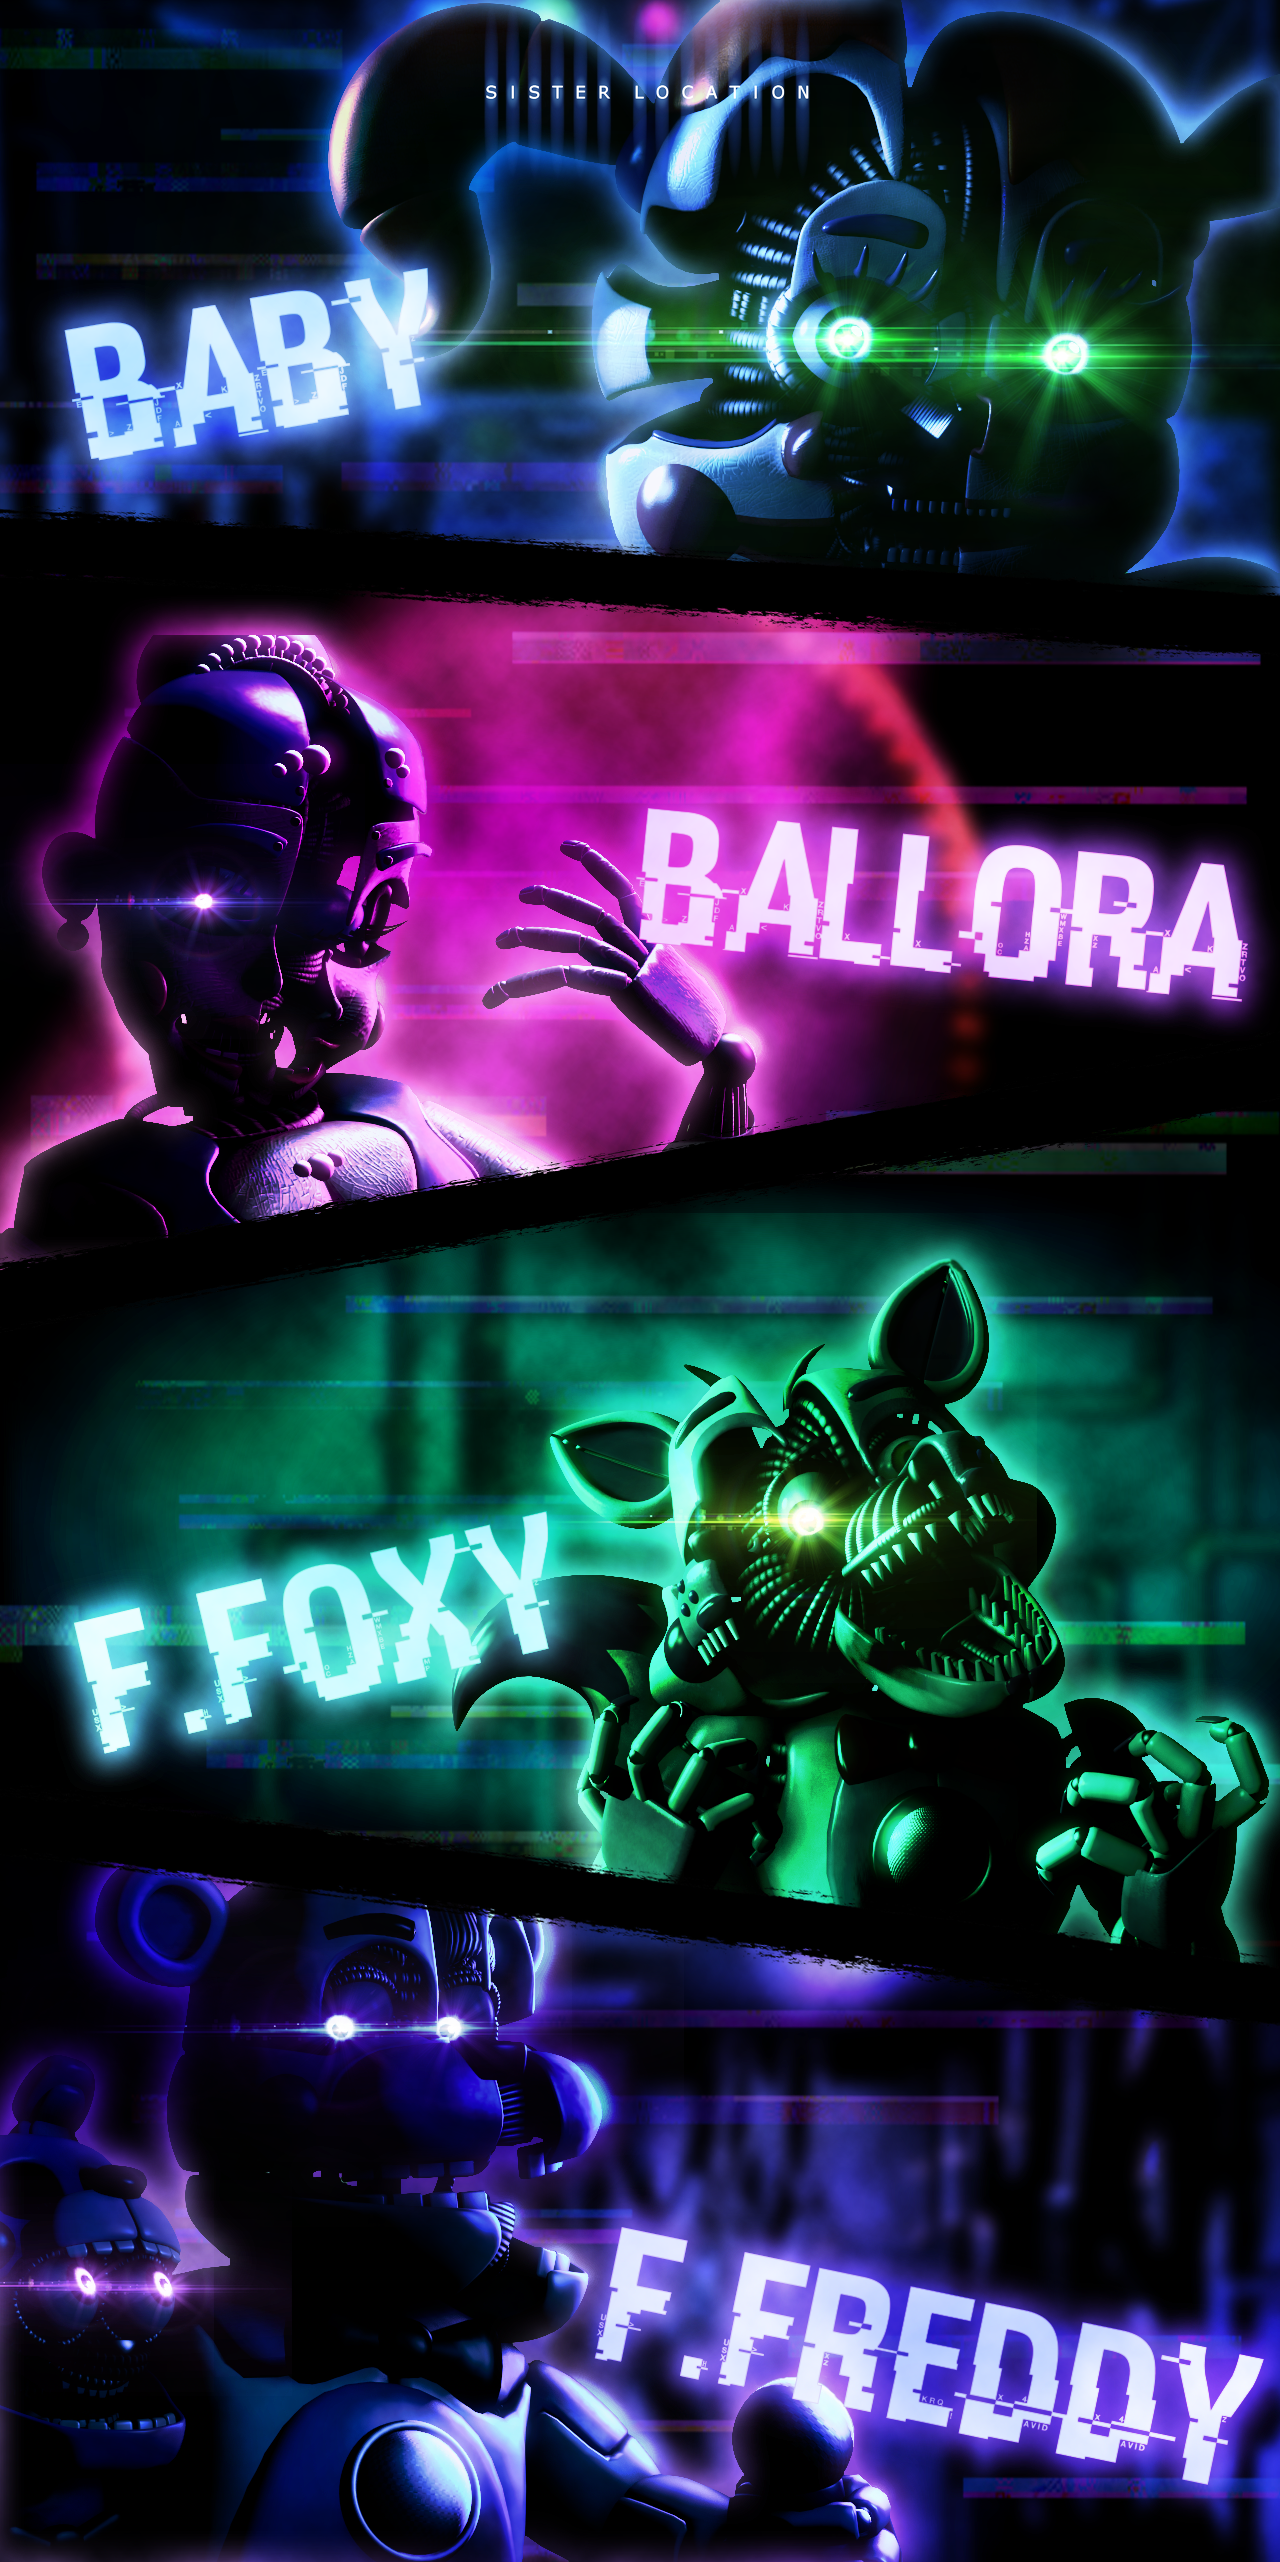 Fnaf Sfm Sister Location Wallpaper By Aftonproduction On Deviantart